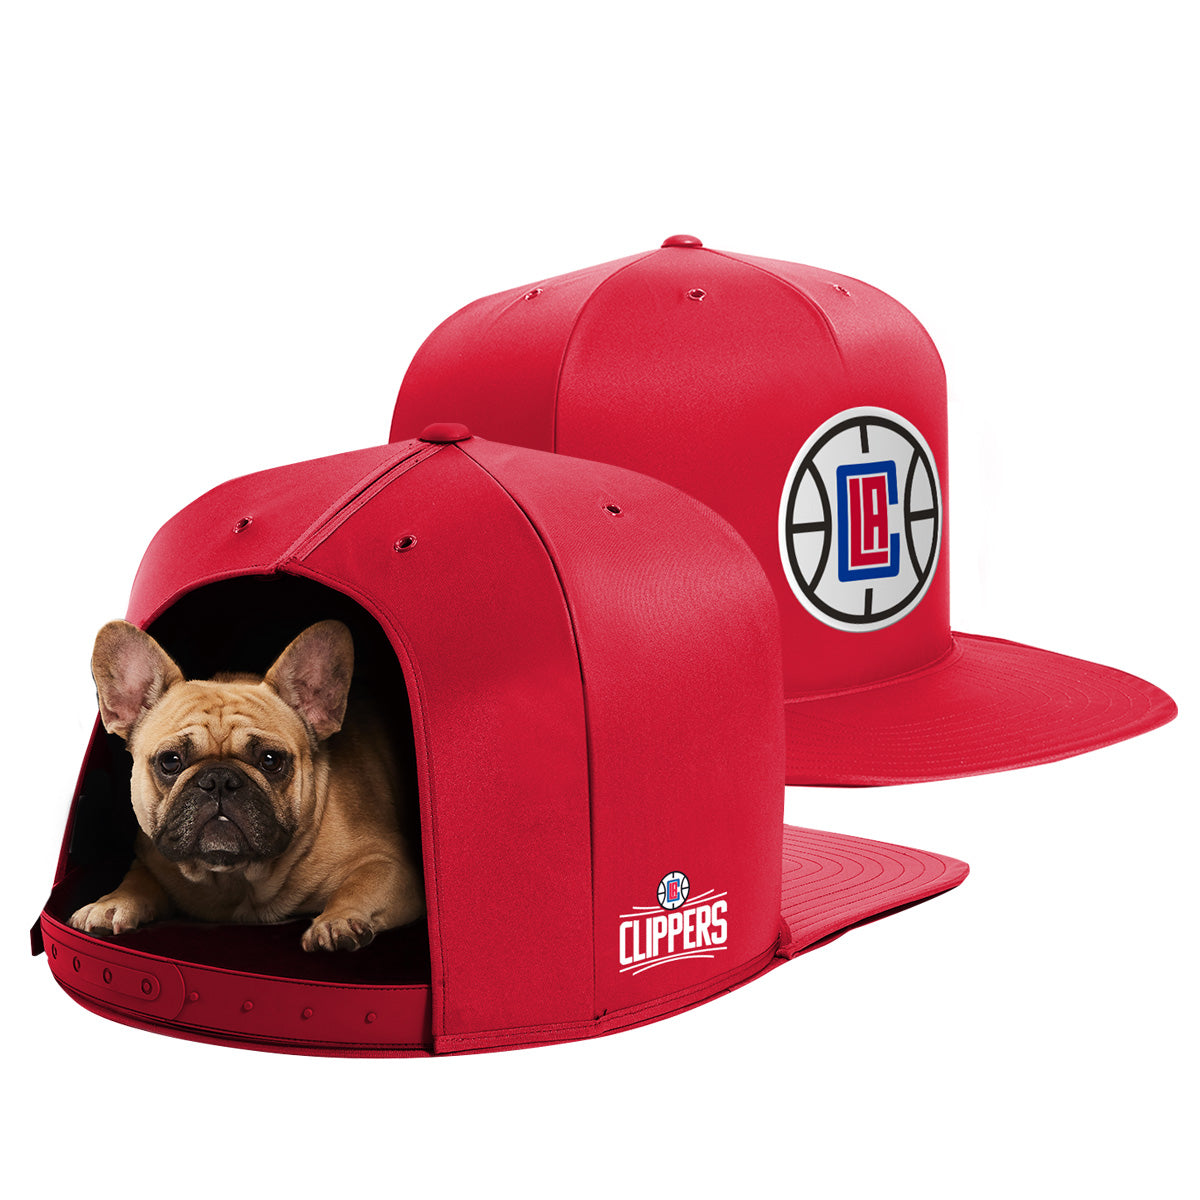 Nap Cap - NBA - Los Angeles Clippers - Pet Bed